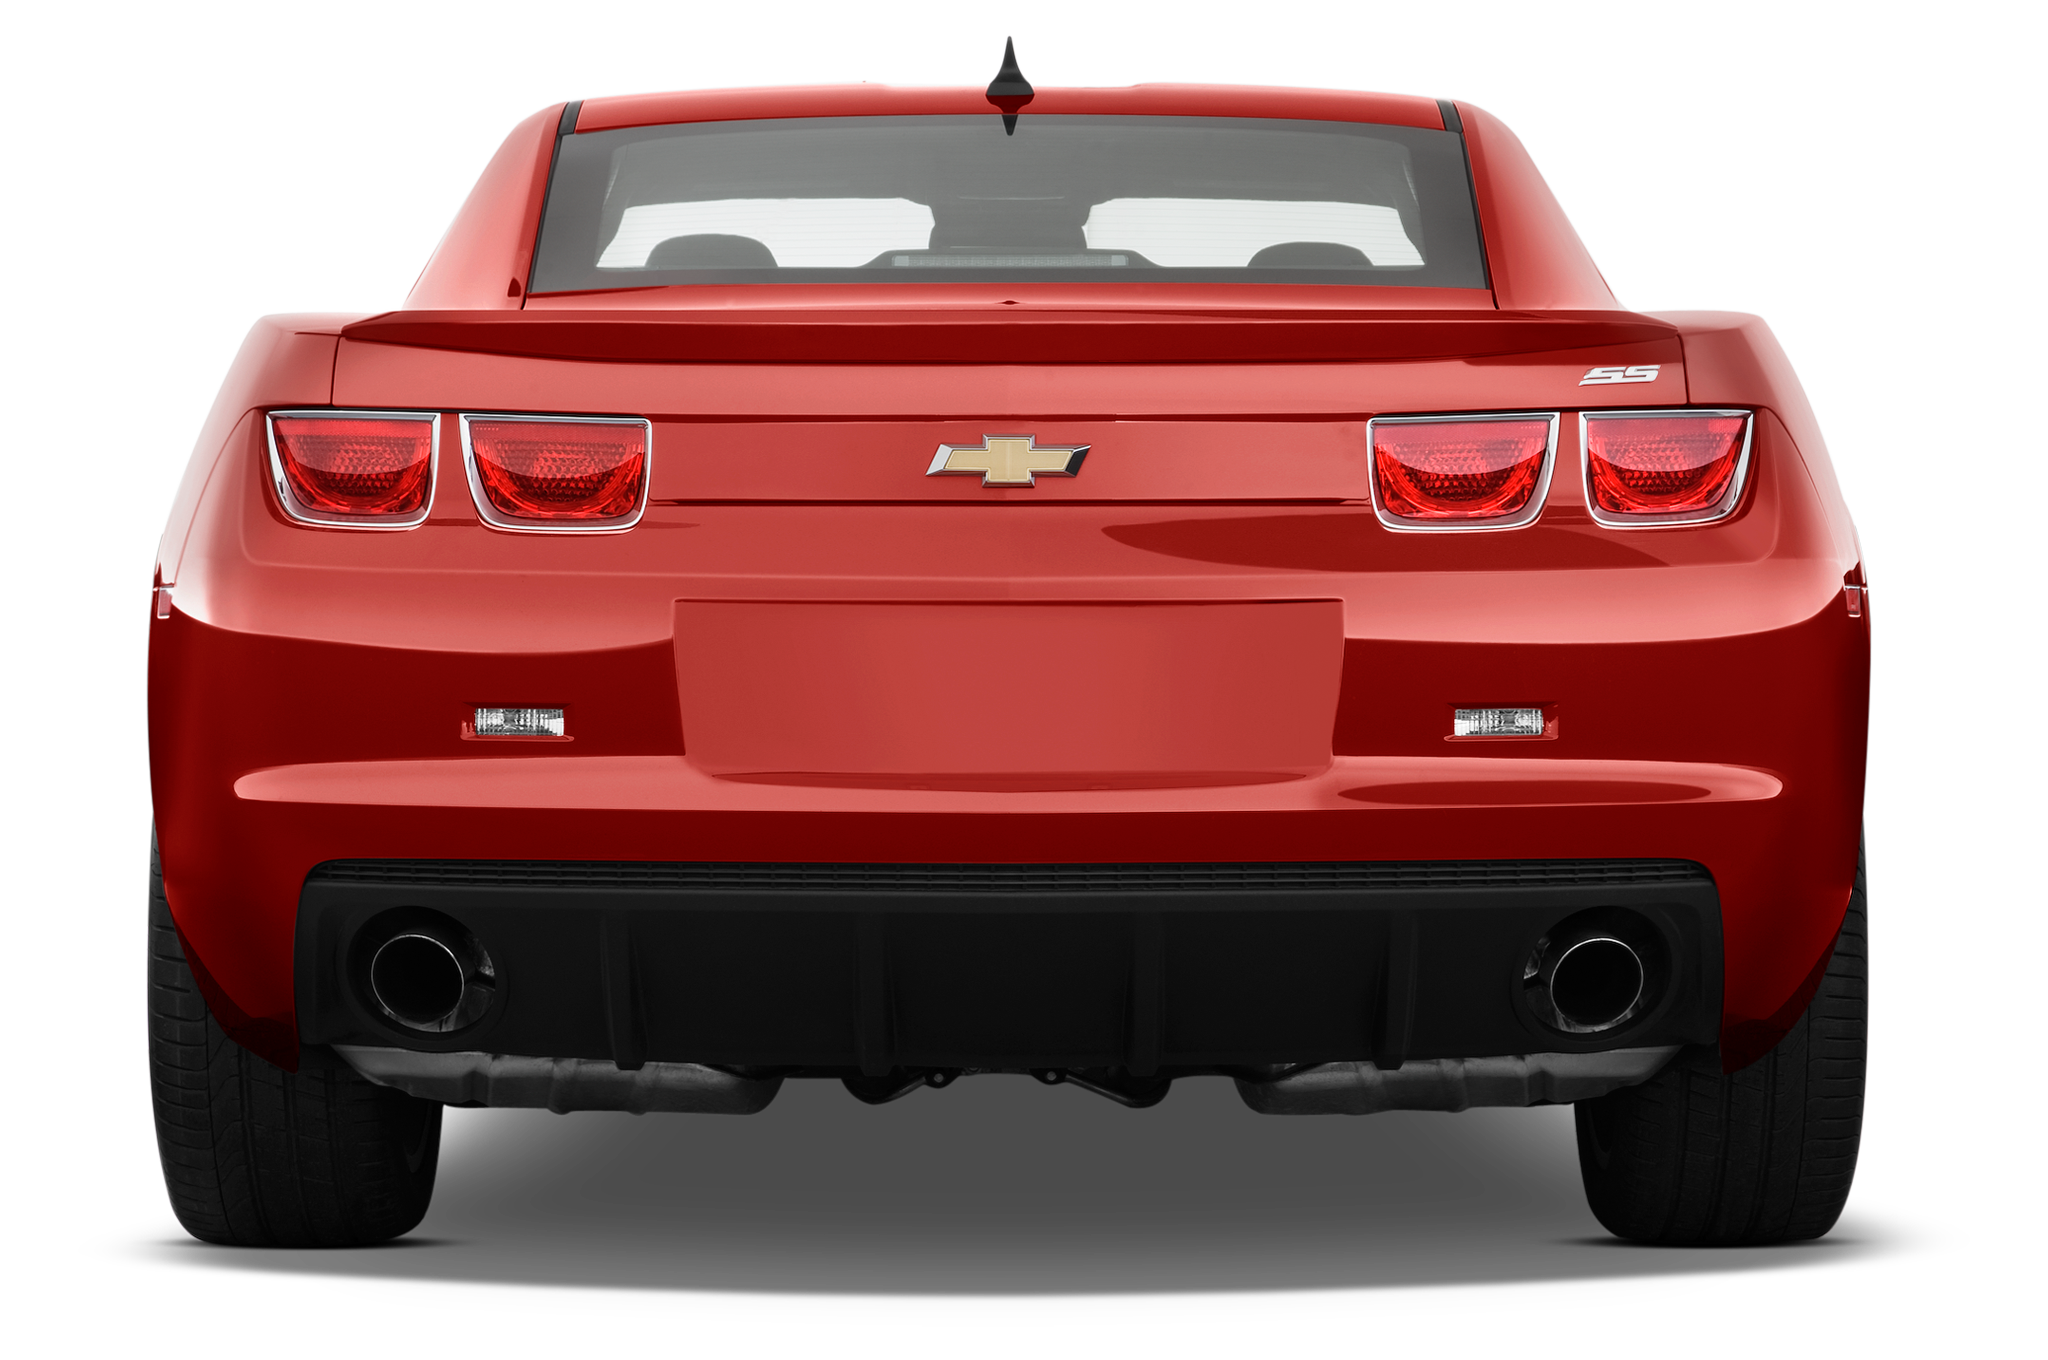 2010 chevy camaro ss - chevrolet sport coupe review - automobile